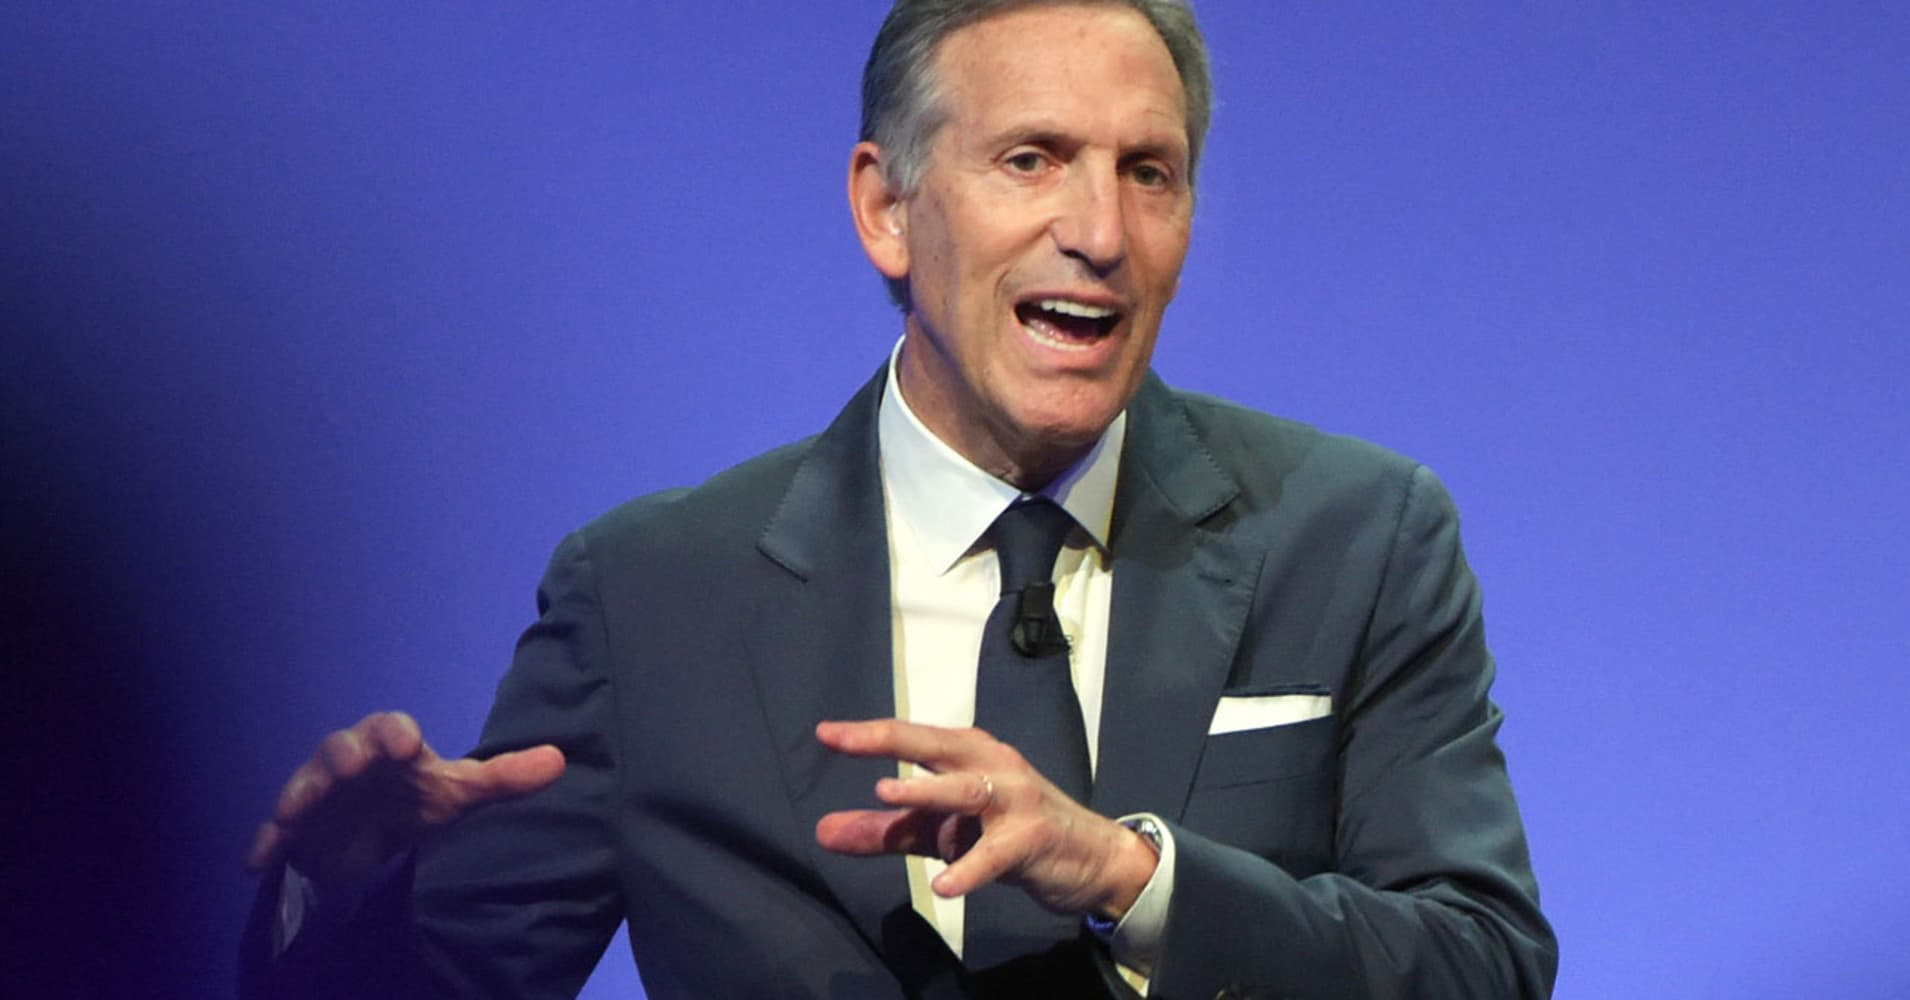 Tim Armstrong would support Howard Schultz or Mike Bloomberg in 2020